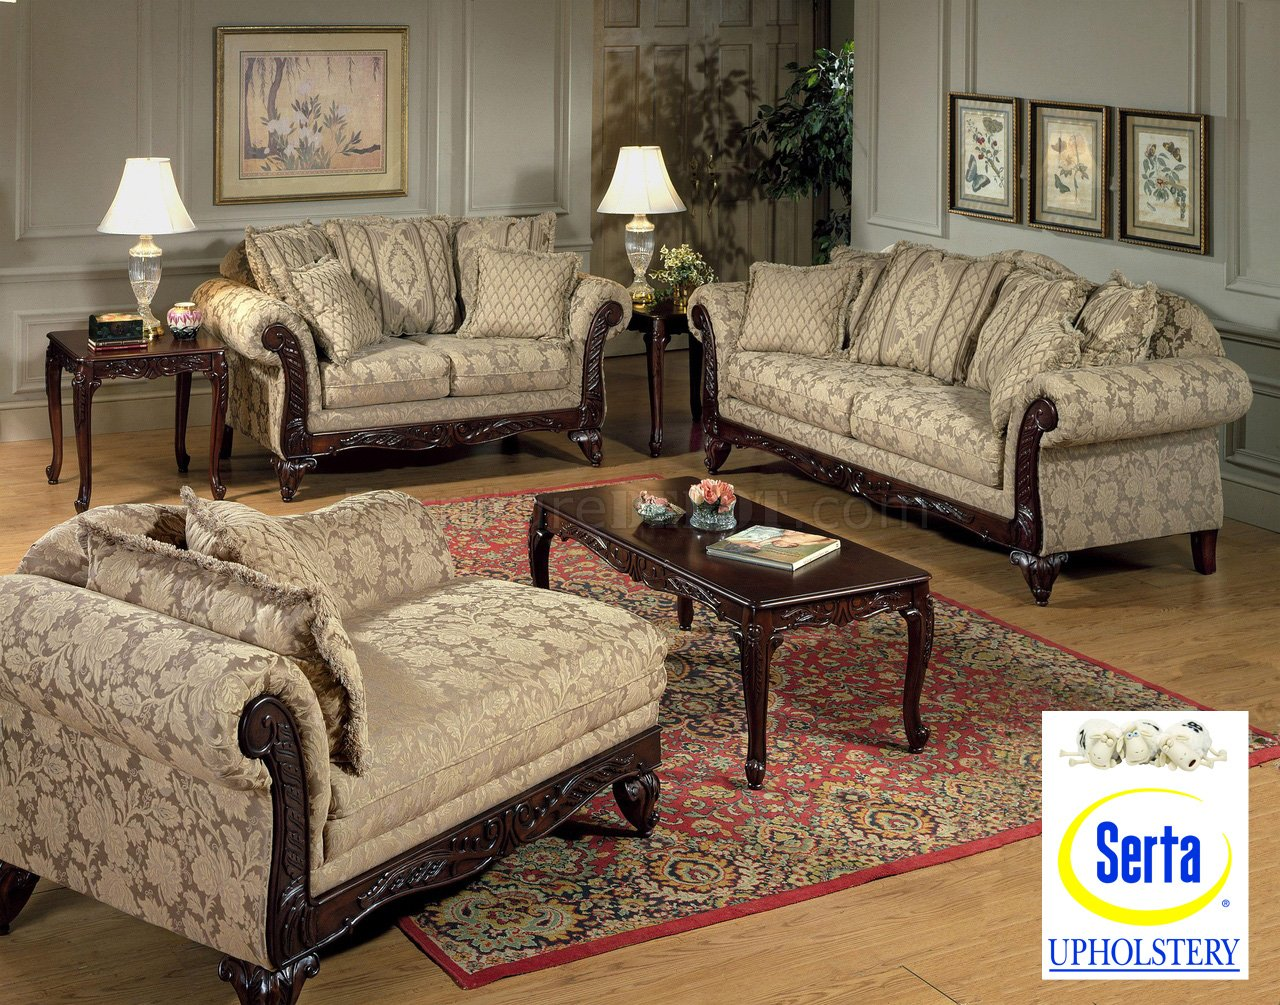 Beige clarissa carmel fabric traditional 2pc sofa set w for Traditional furniture